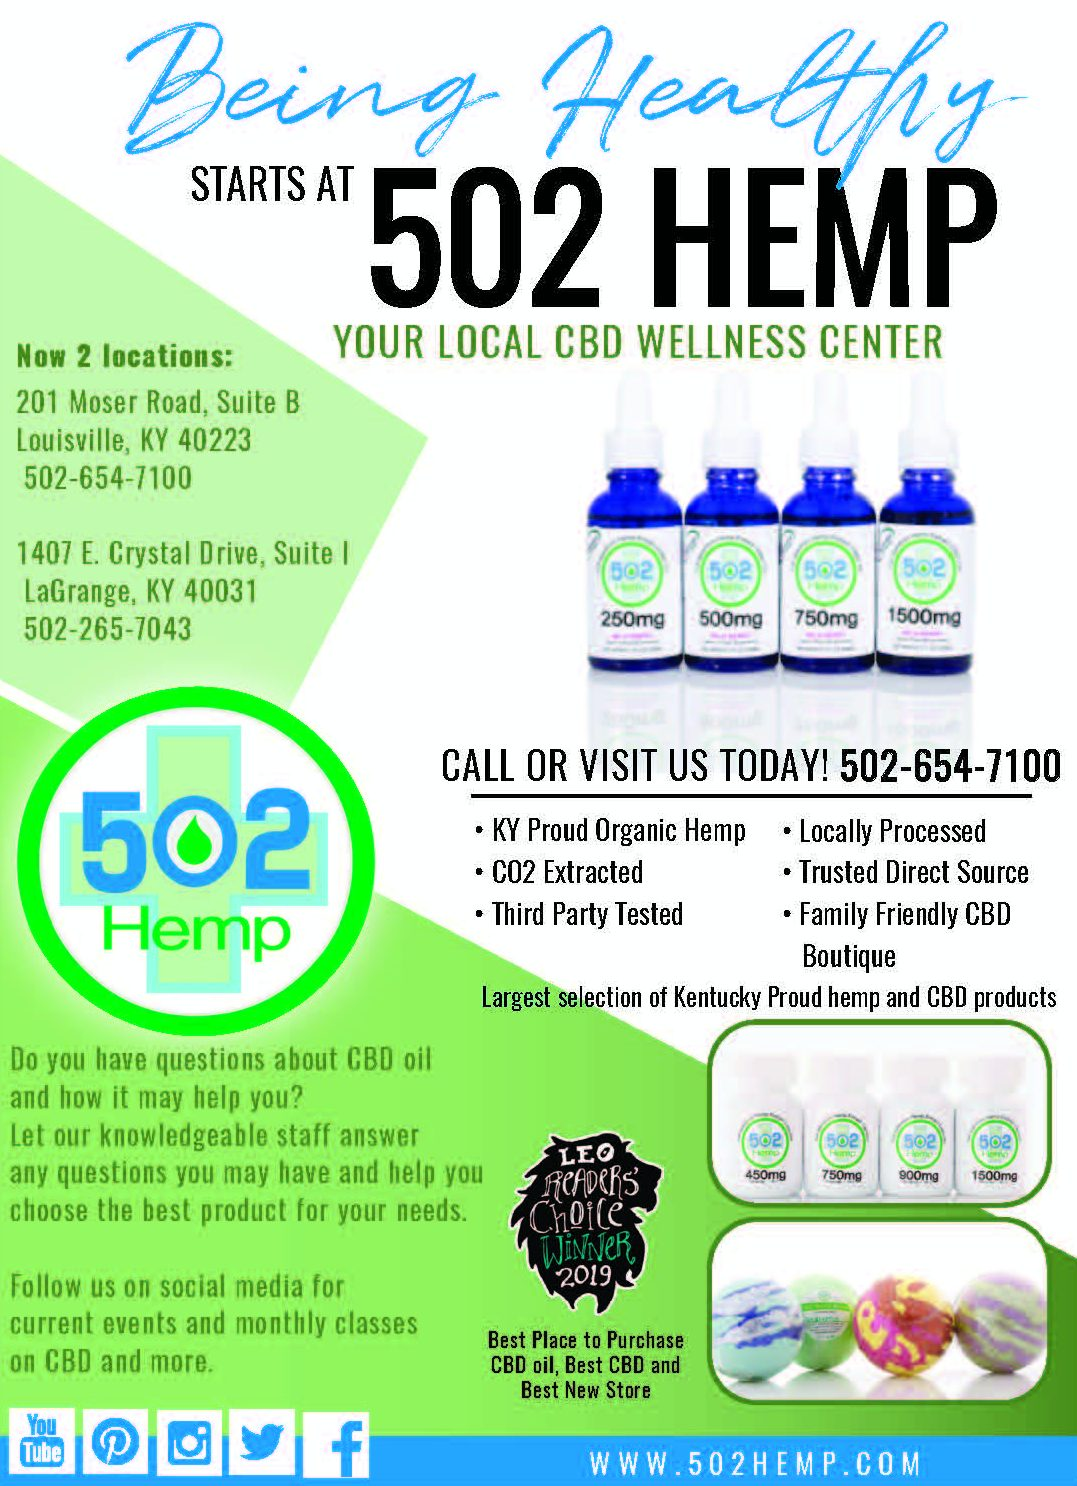 502 Hemp Wellness Centre